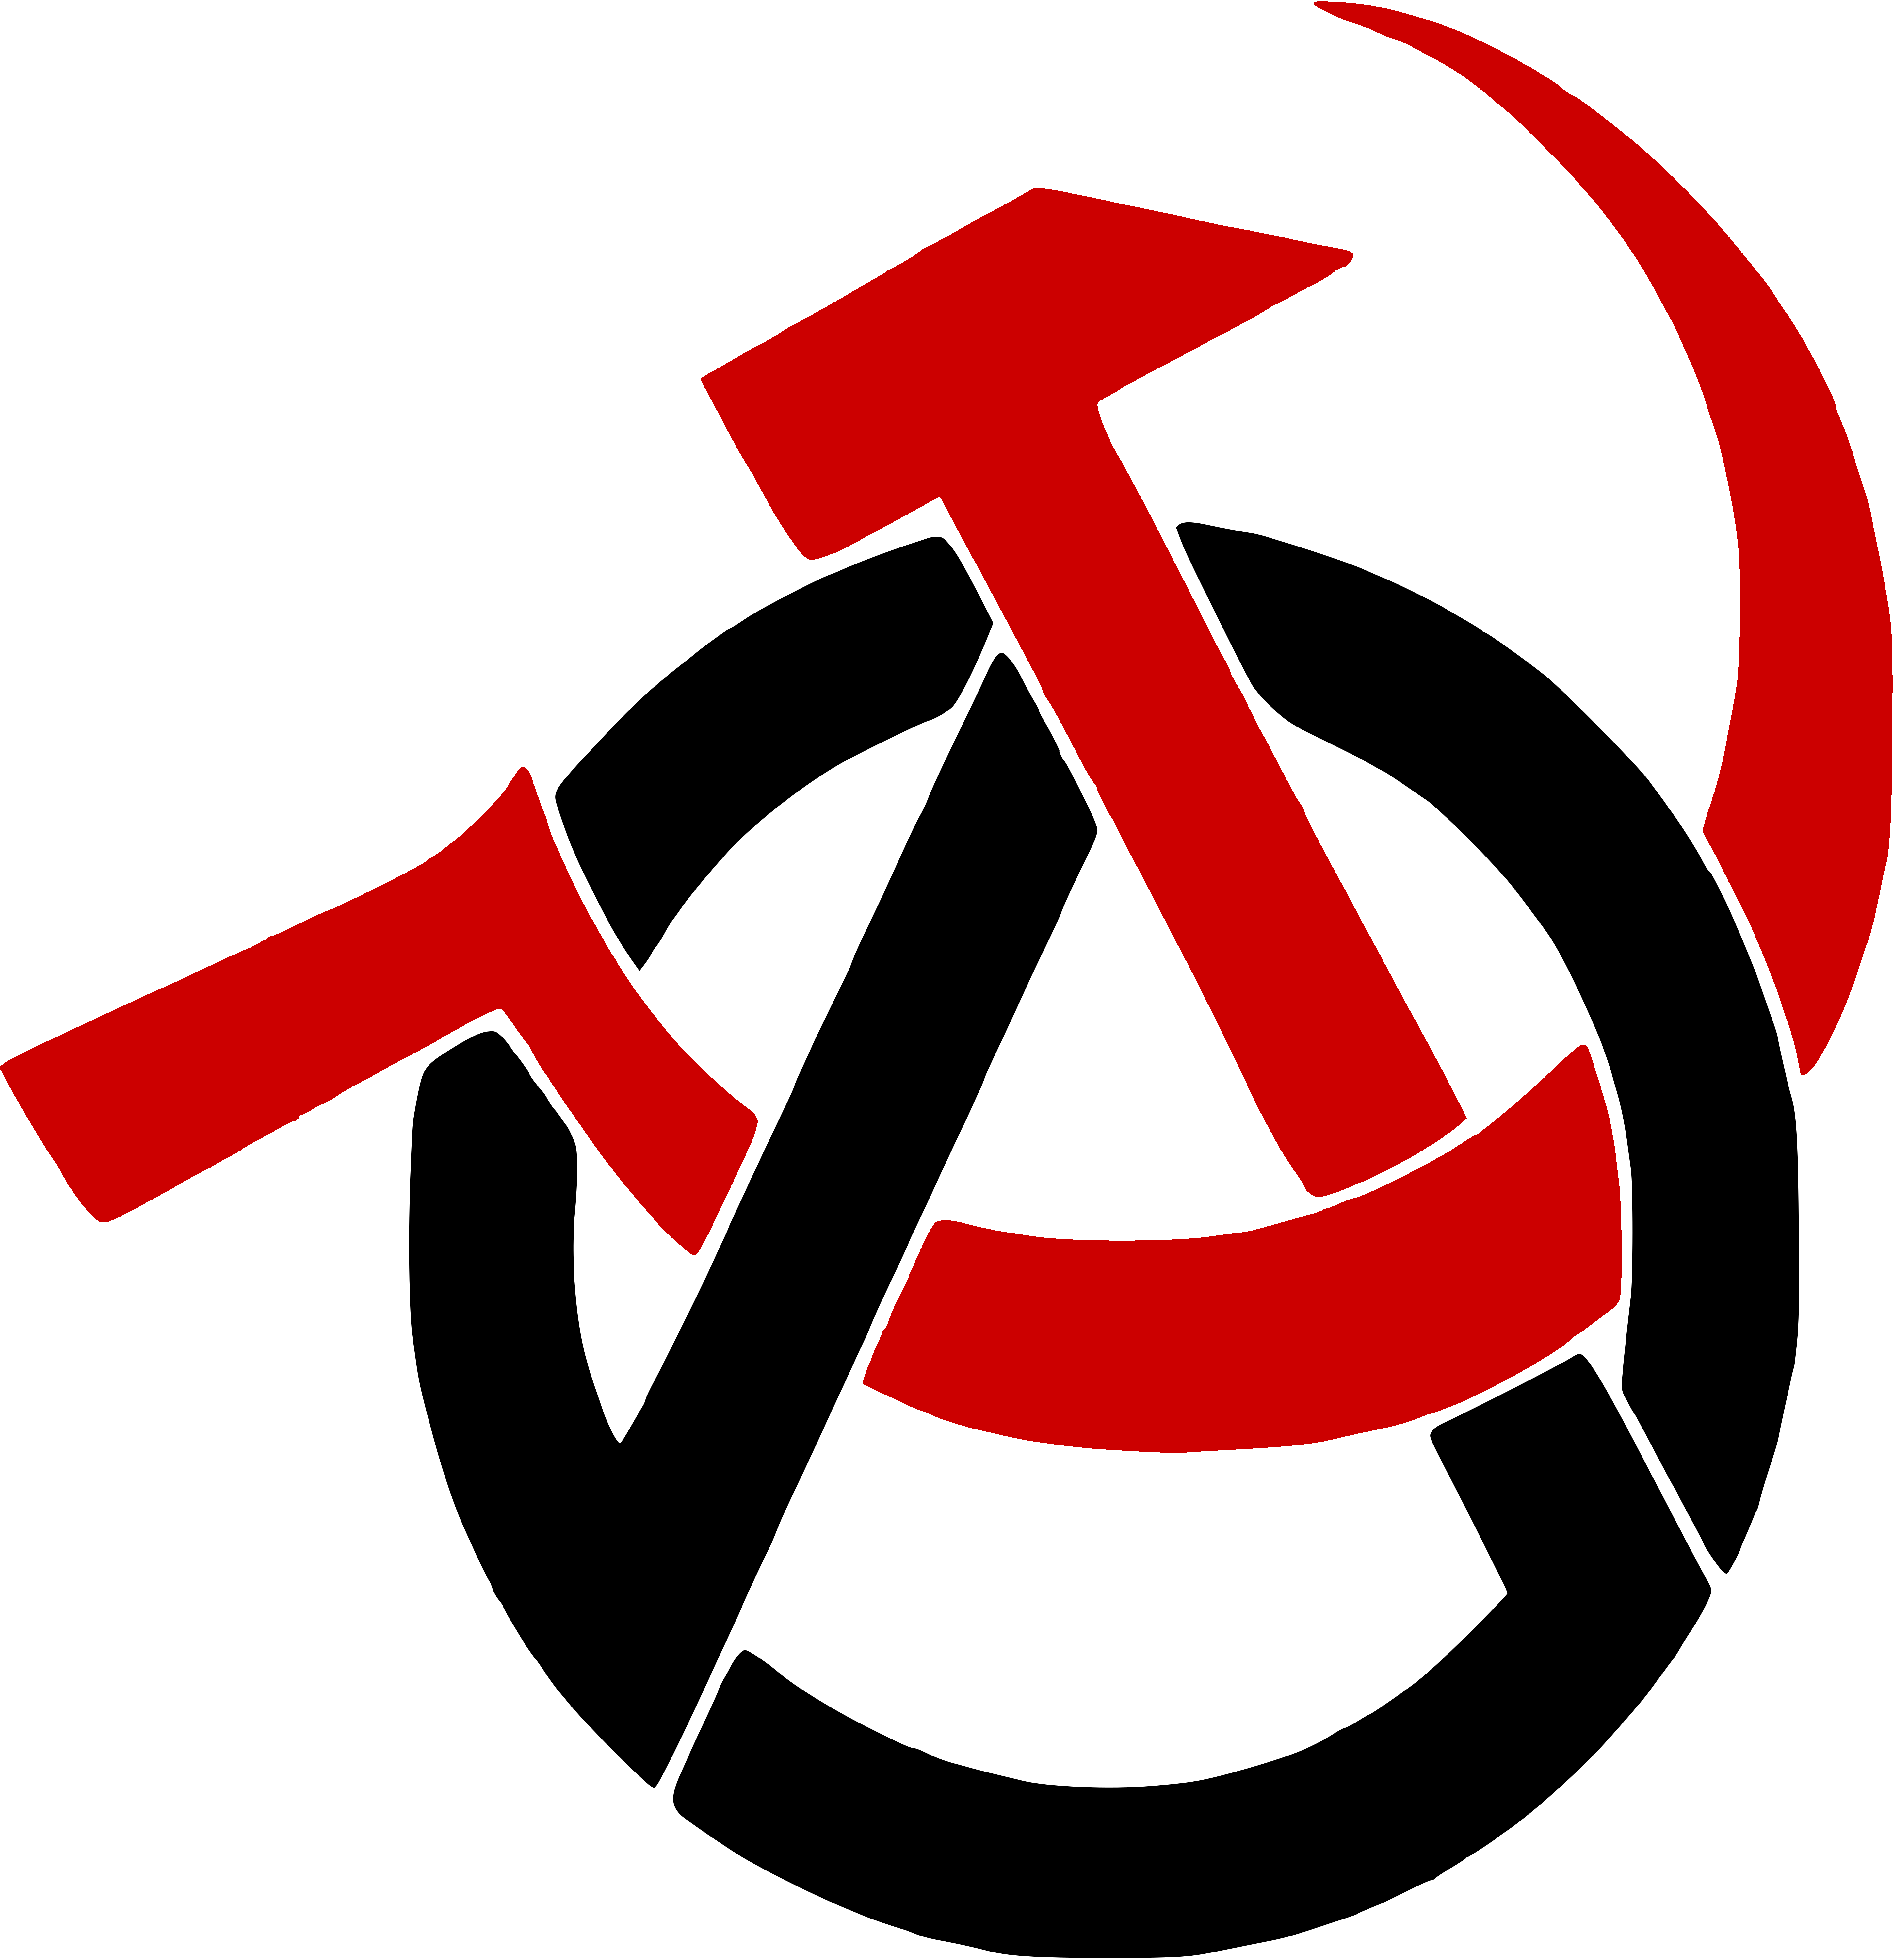 anarcho_communism_by_odbytniczy_demon-d7srti4.png